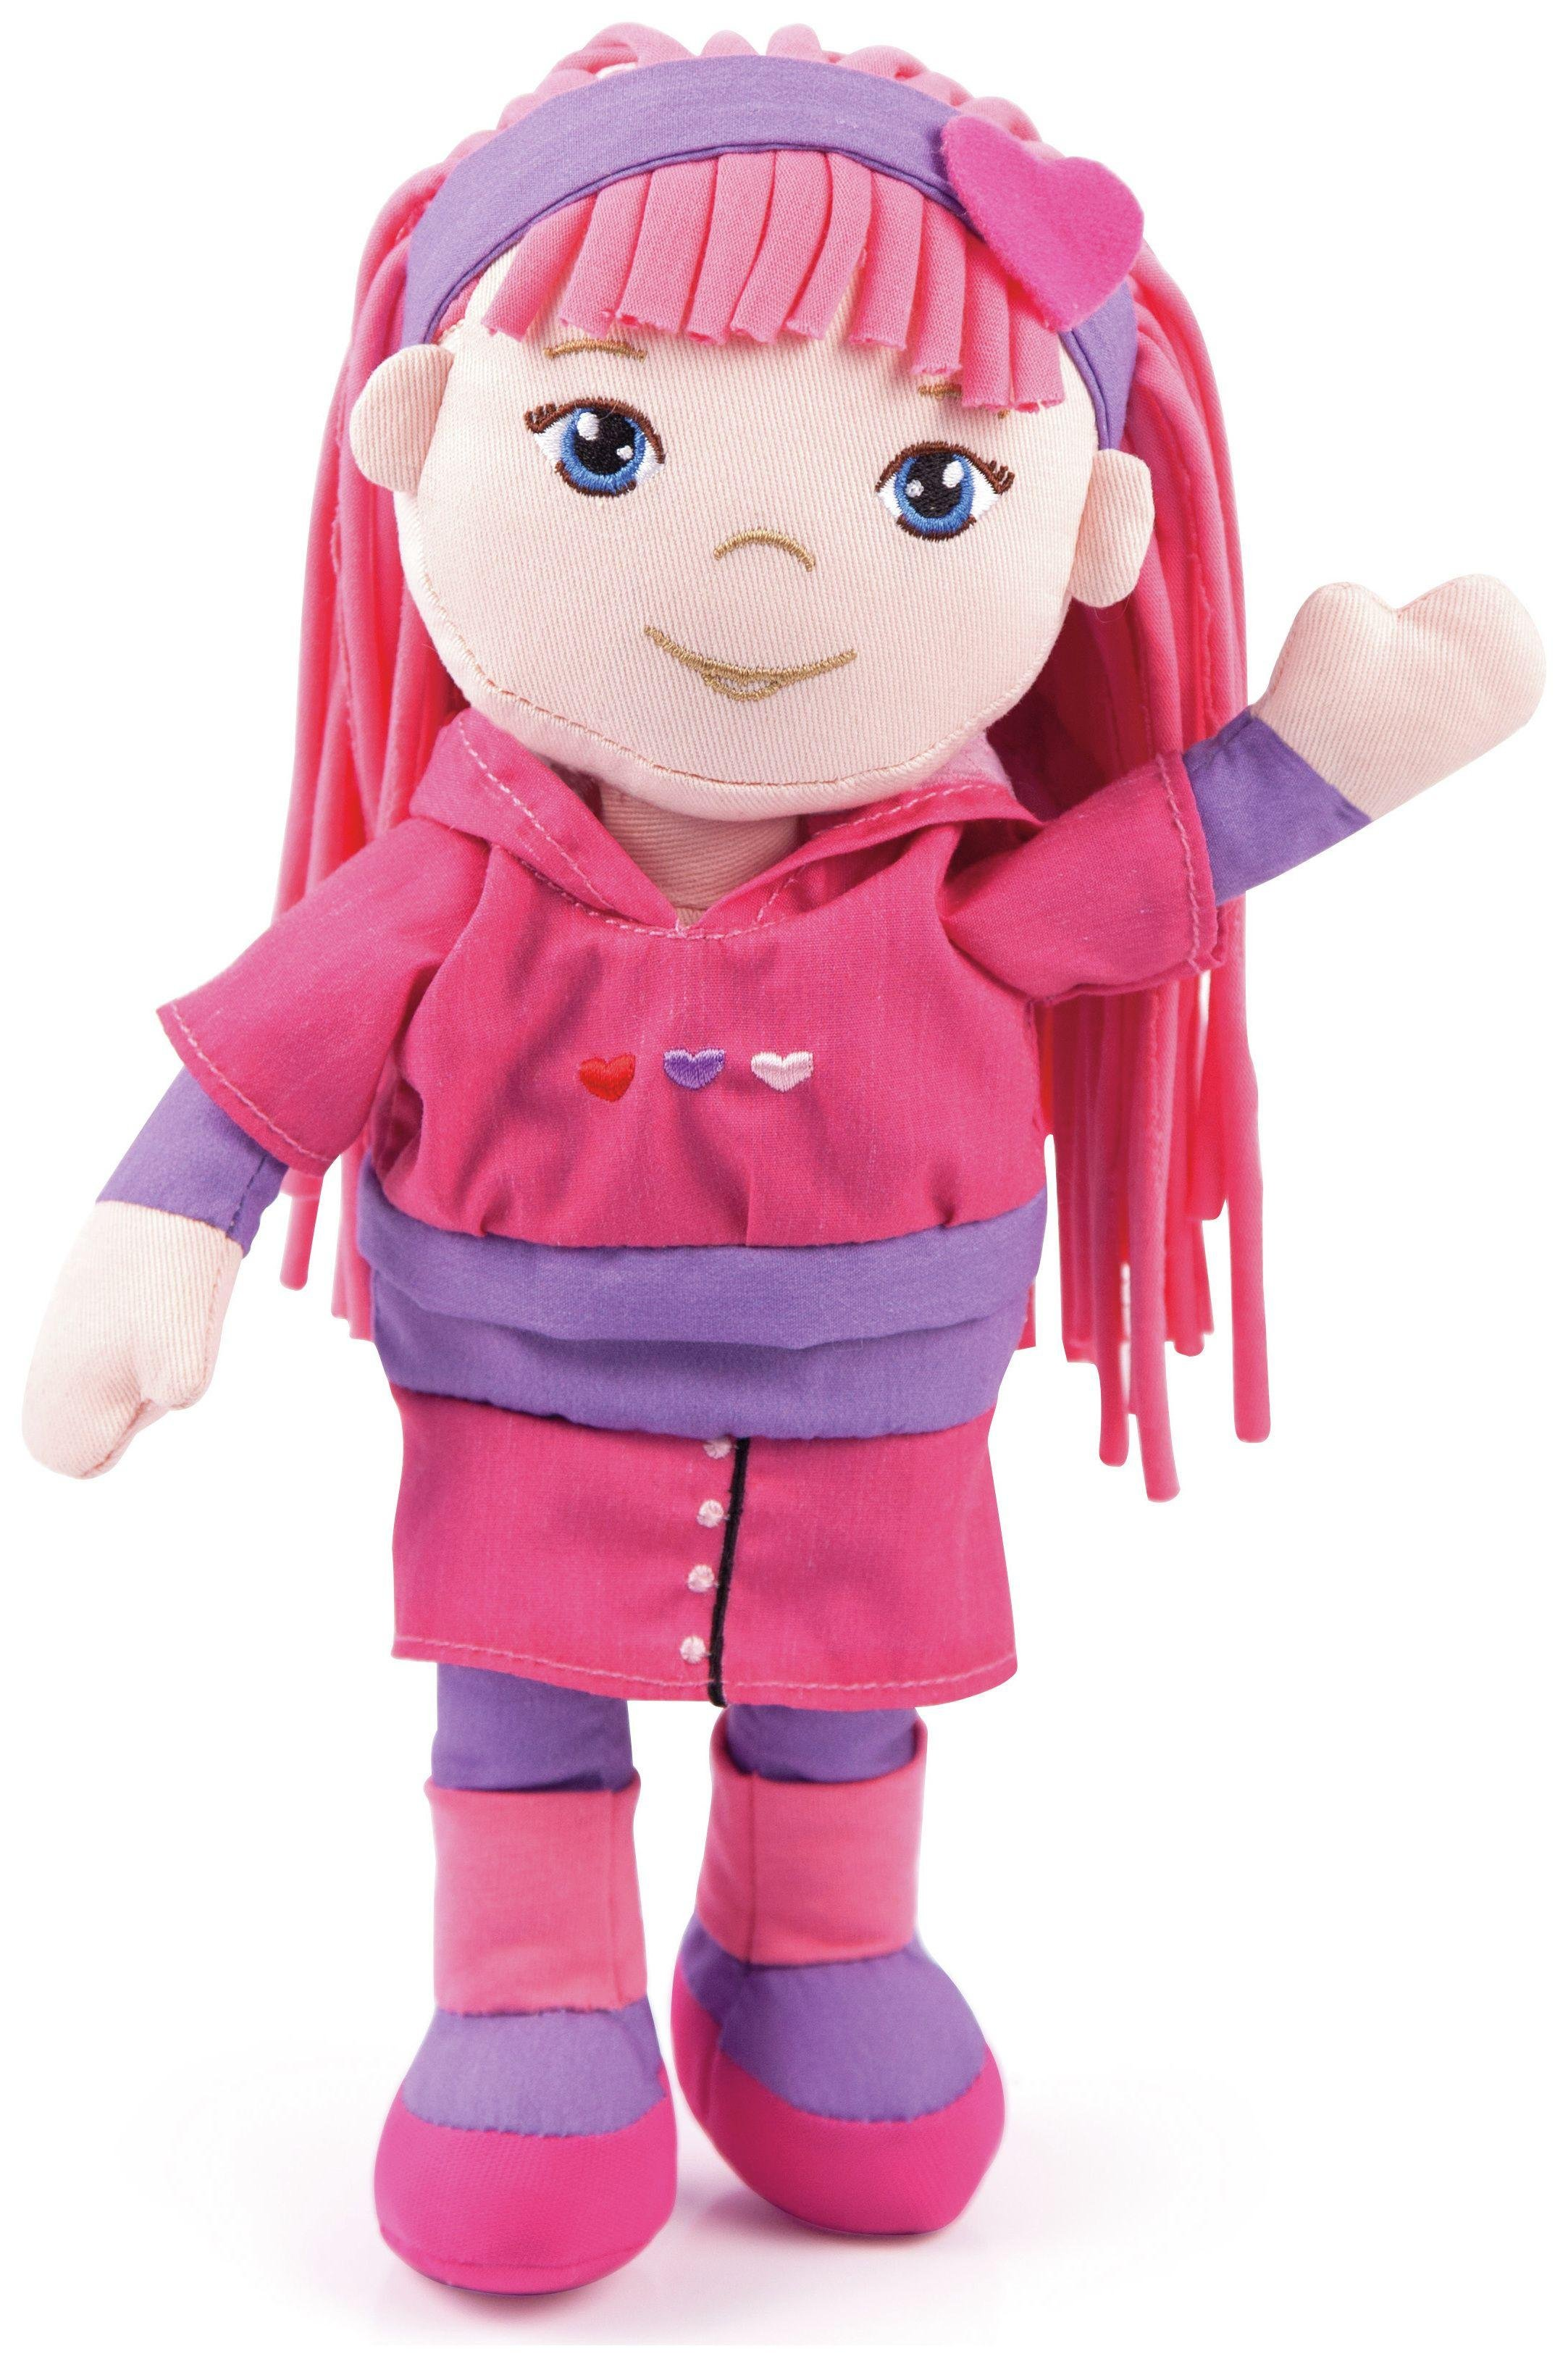 Image of Bayer - 30cm Rag Doll - Pink and Purple